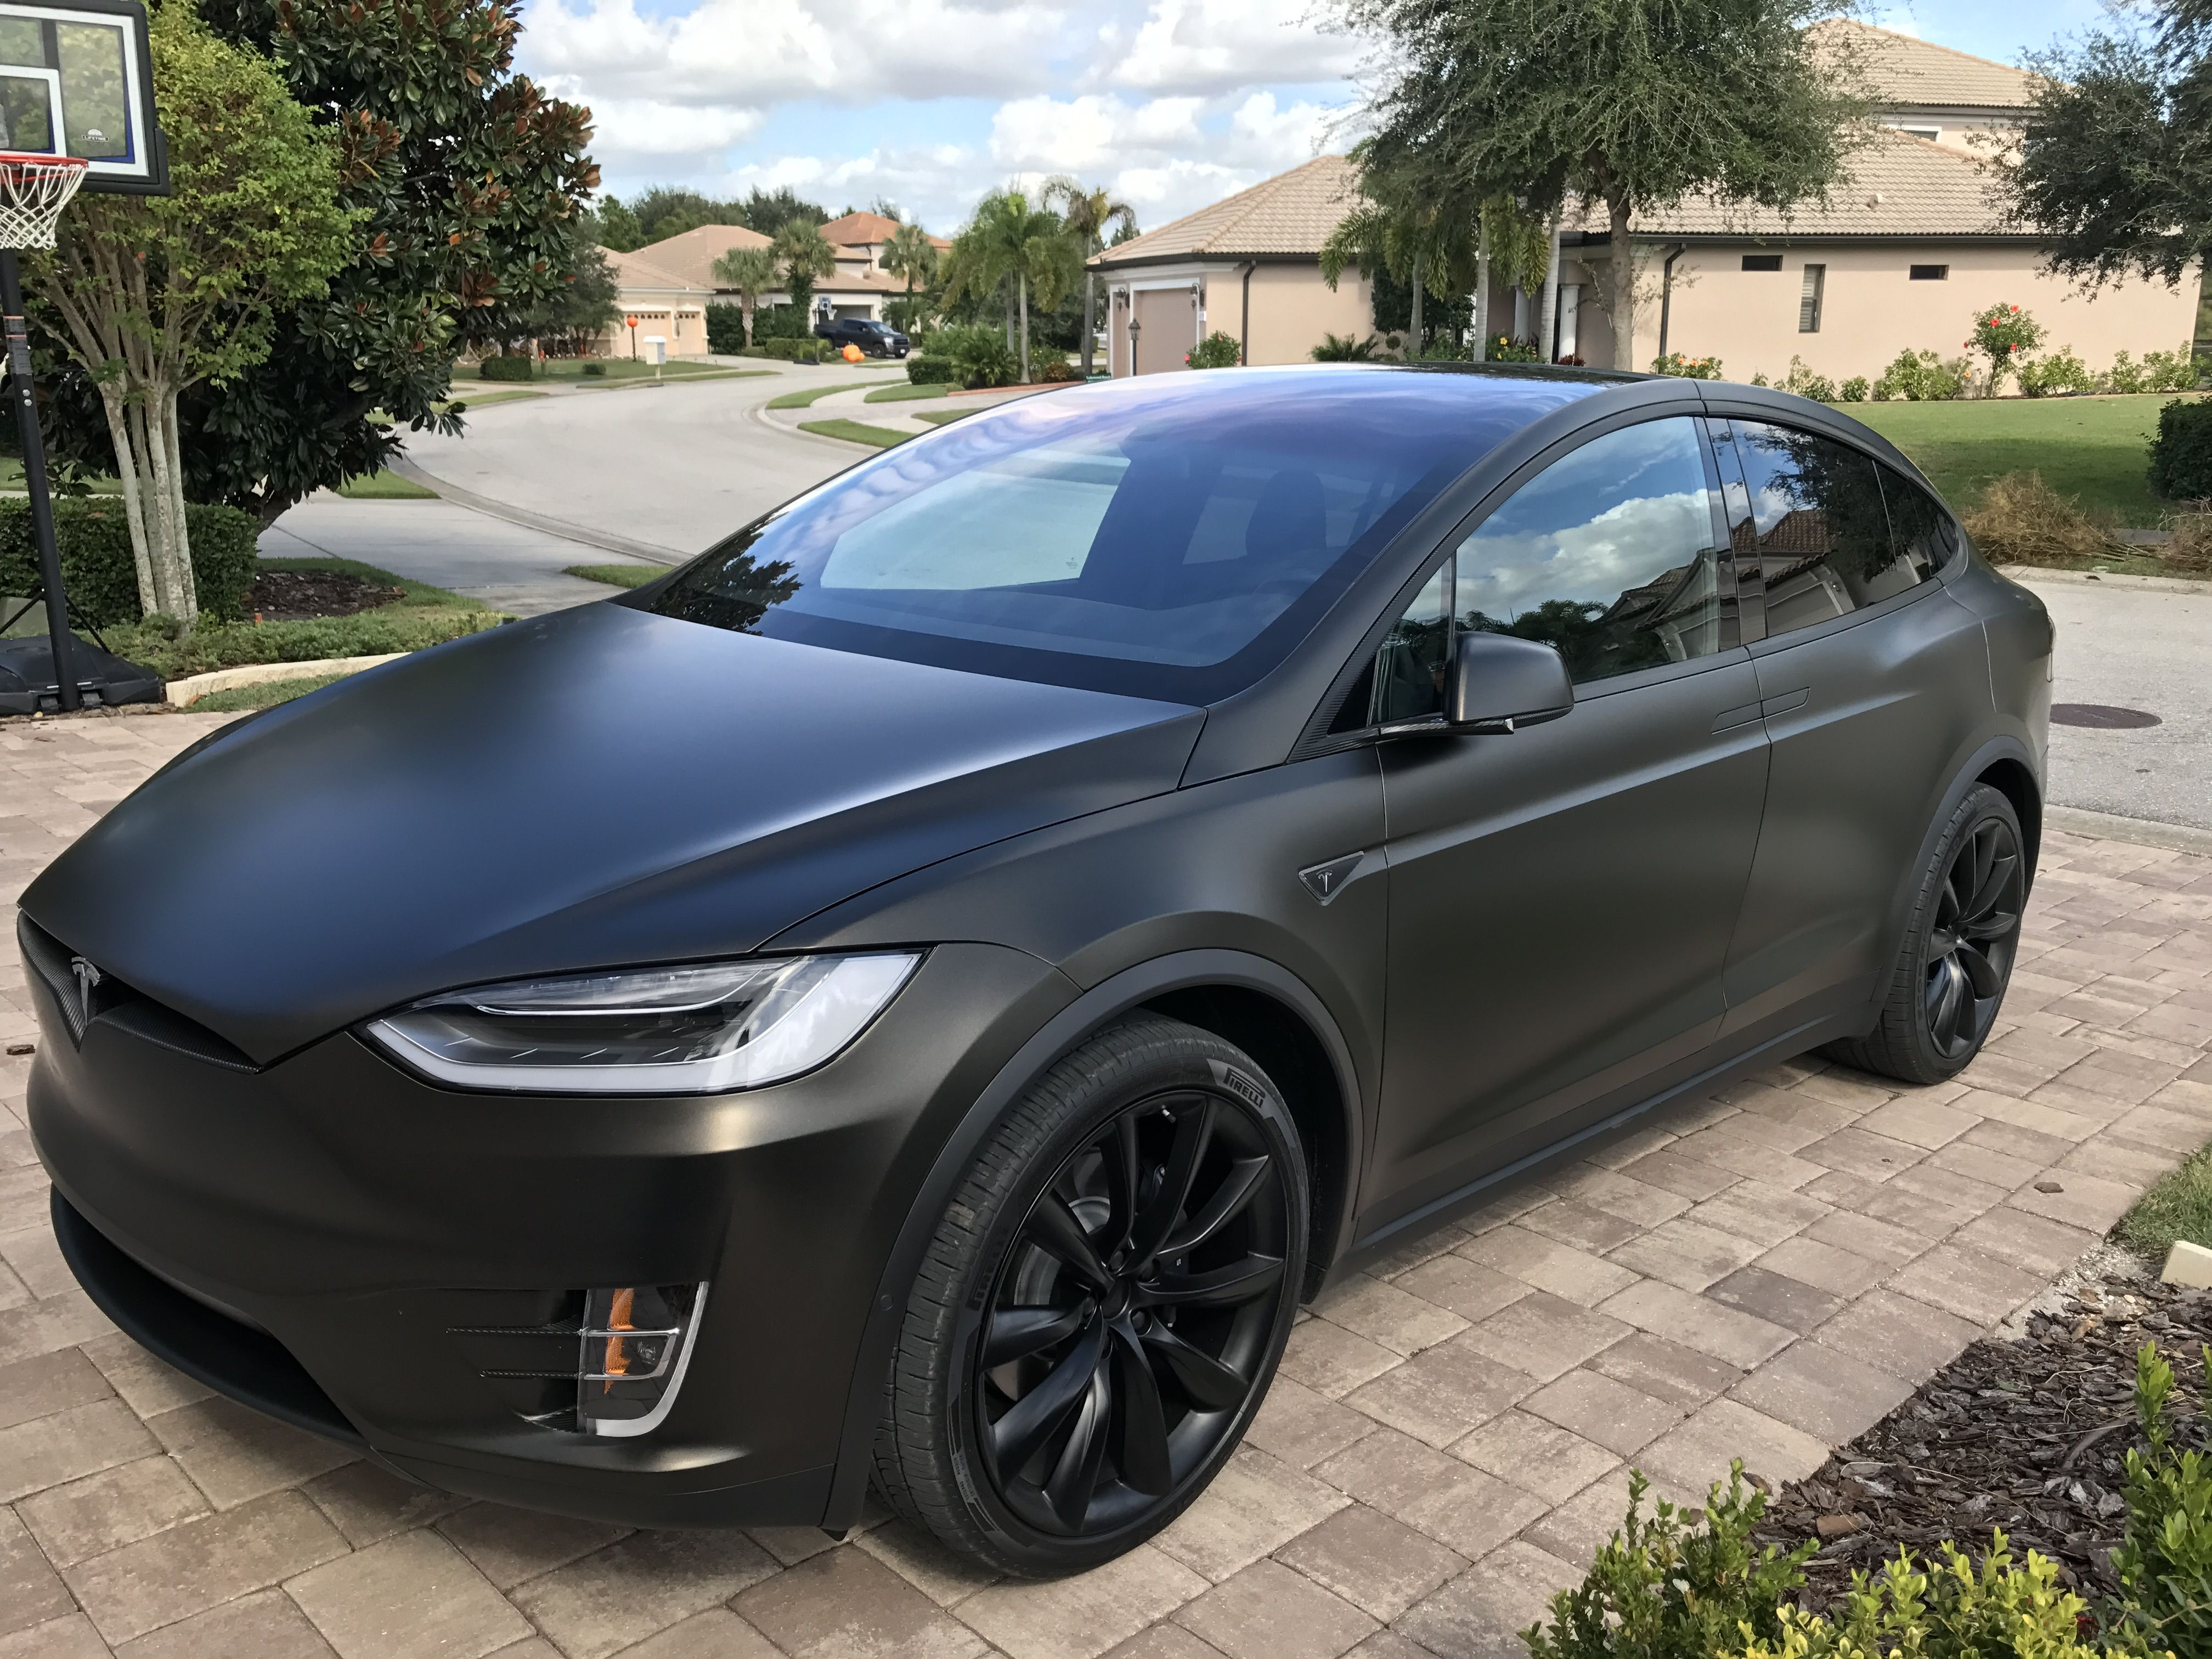 medium resolution of tesla model x black satin gold dust vinyl wrap with carbon fiber accents on chrome and all 6 seat backs imgur